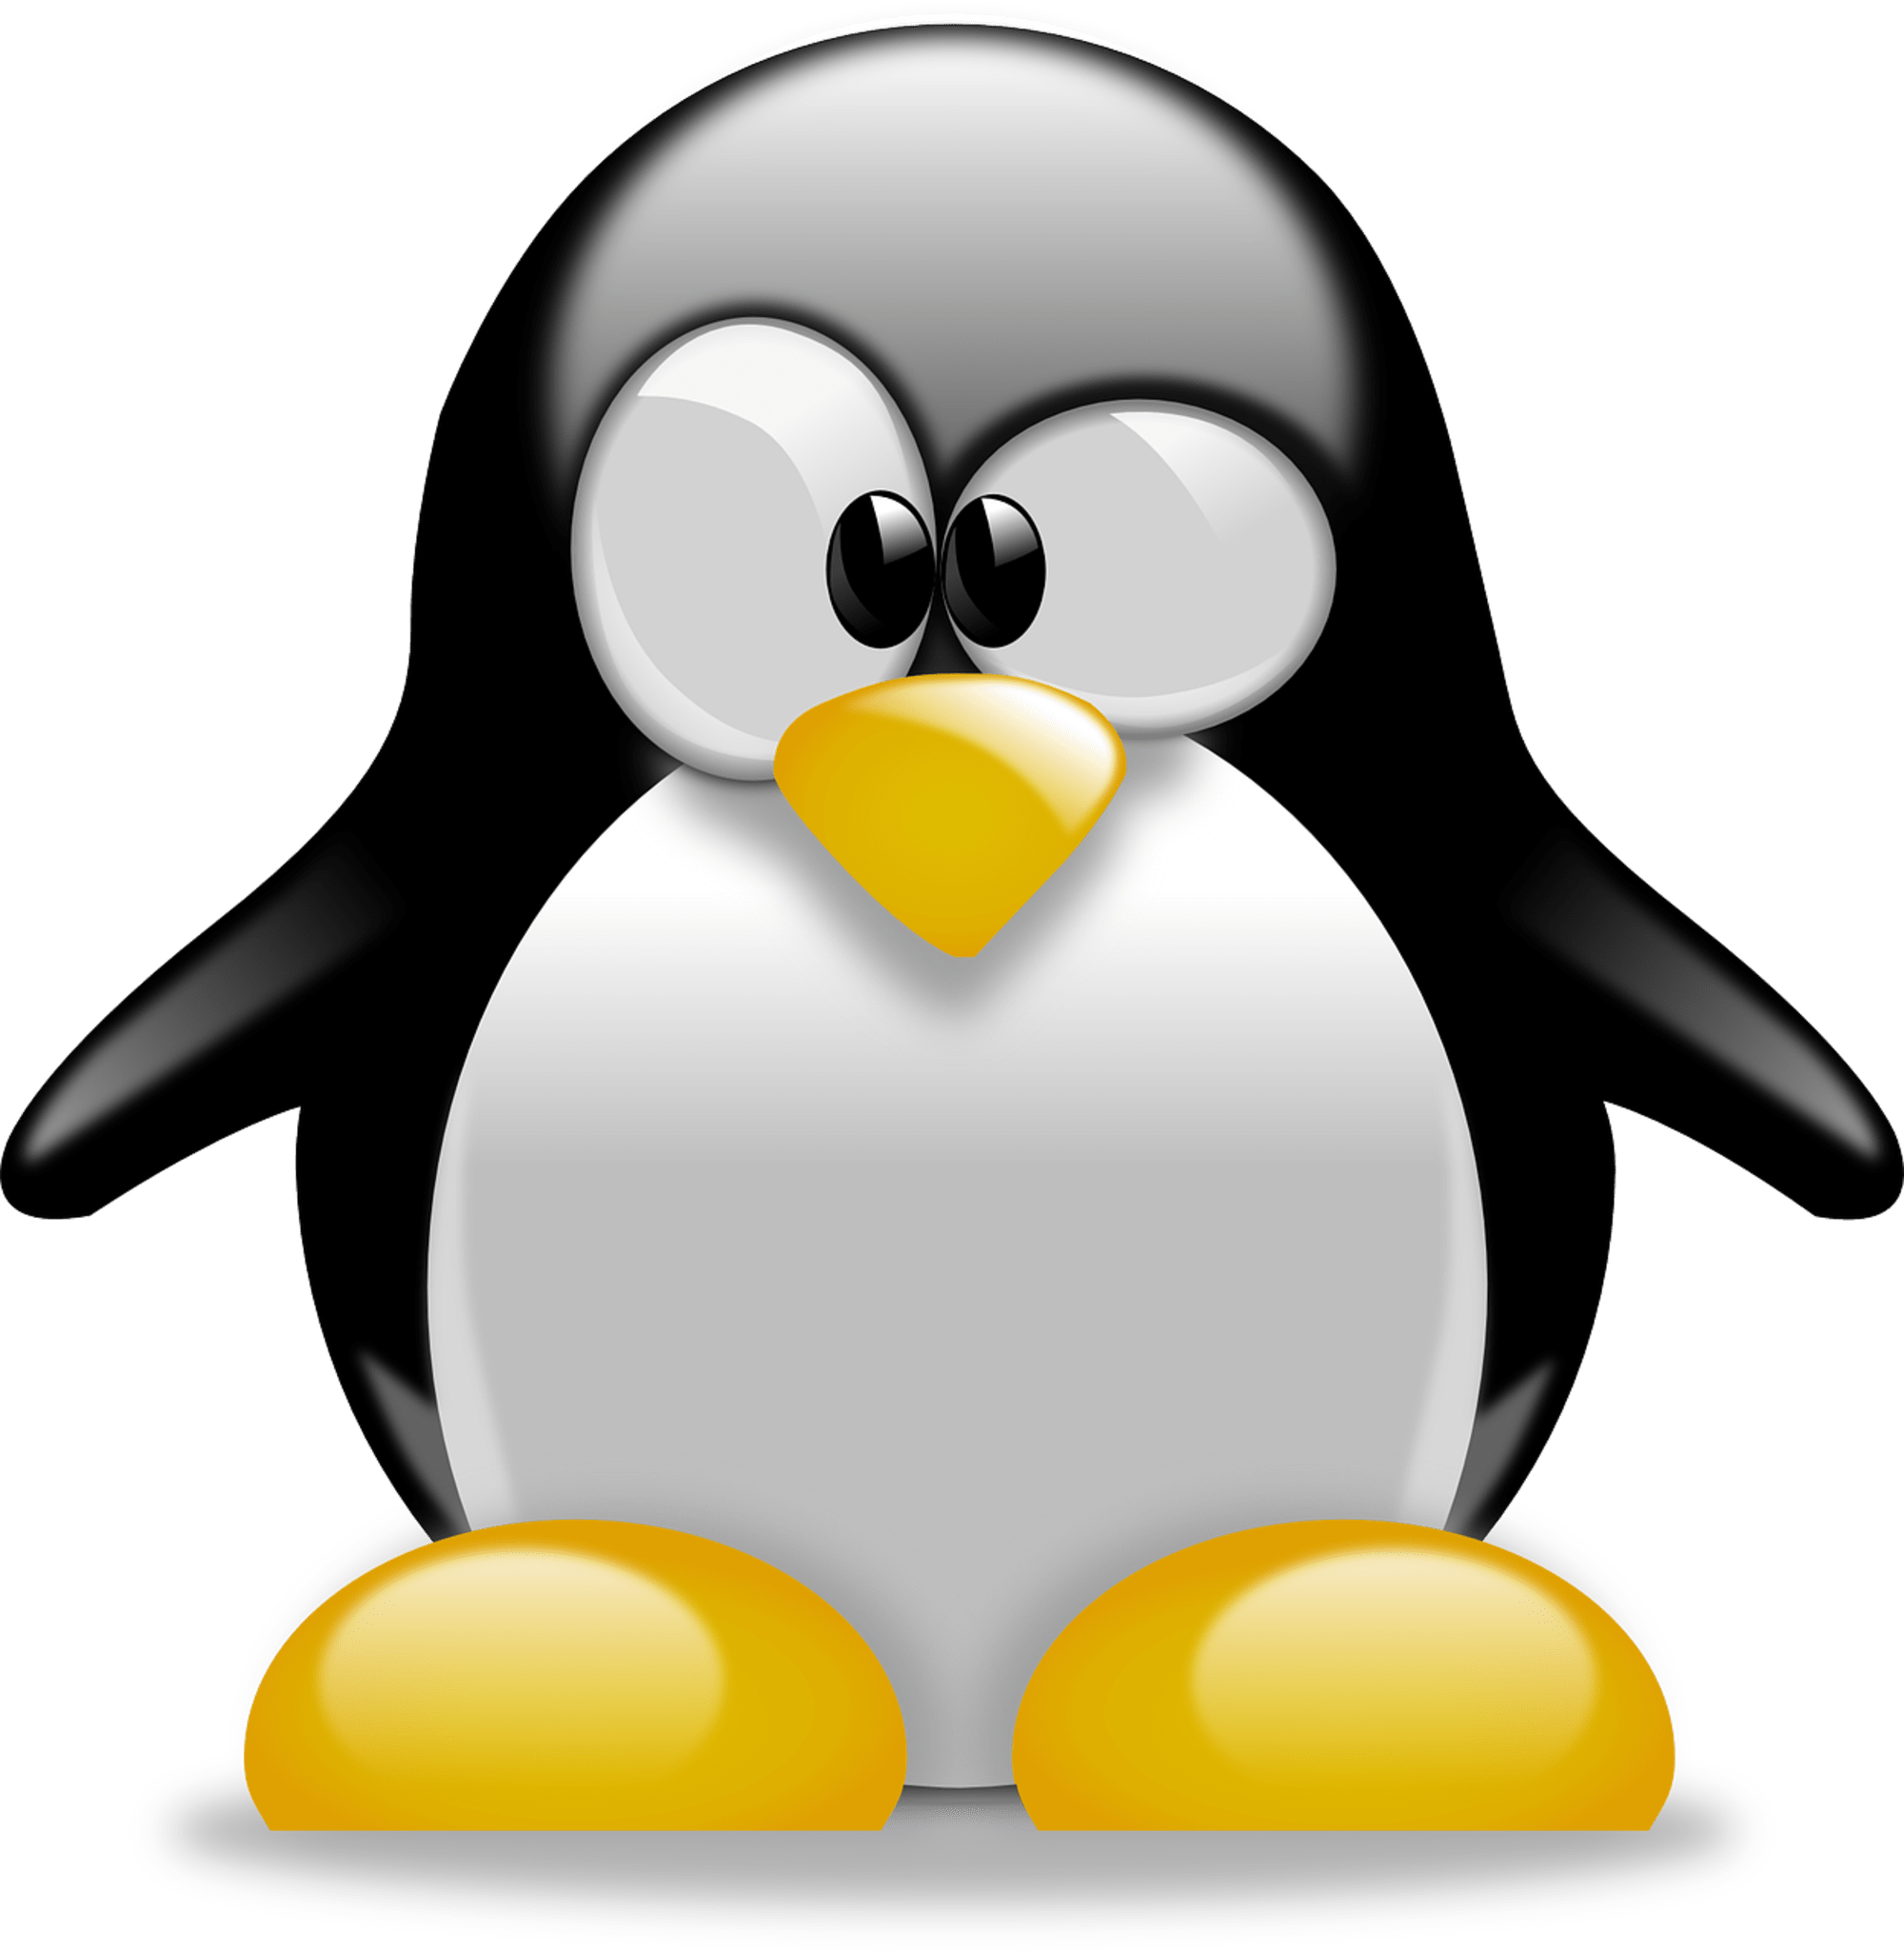 How to Connect to SQL Server from Linux